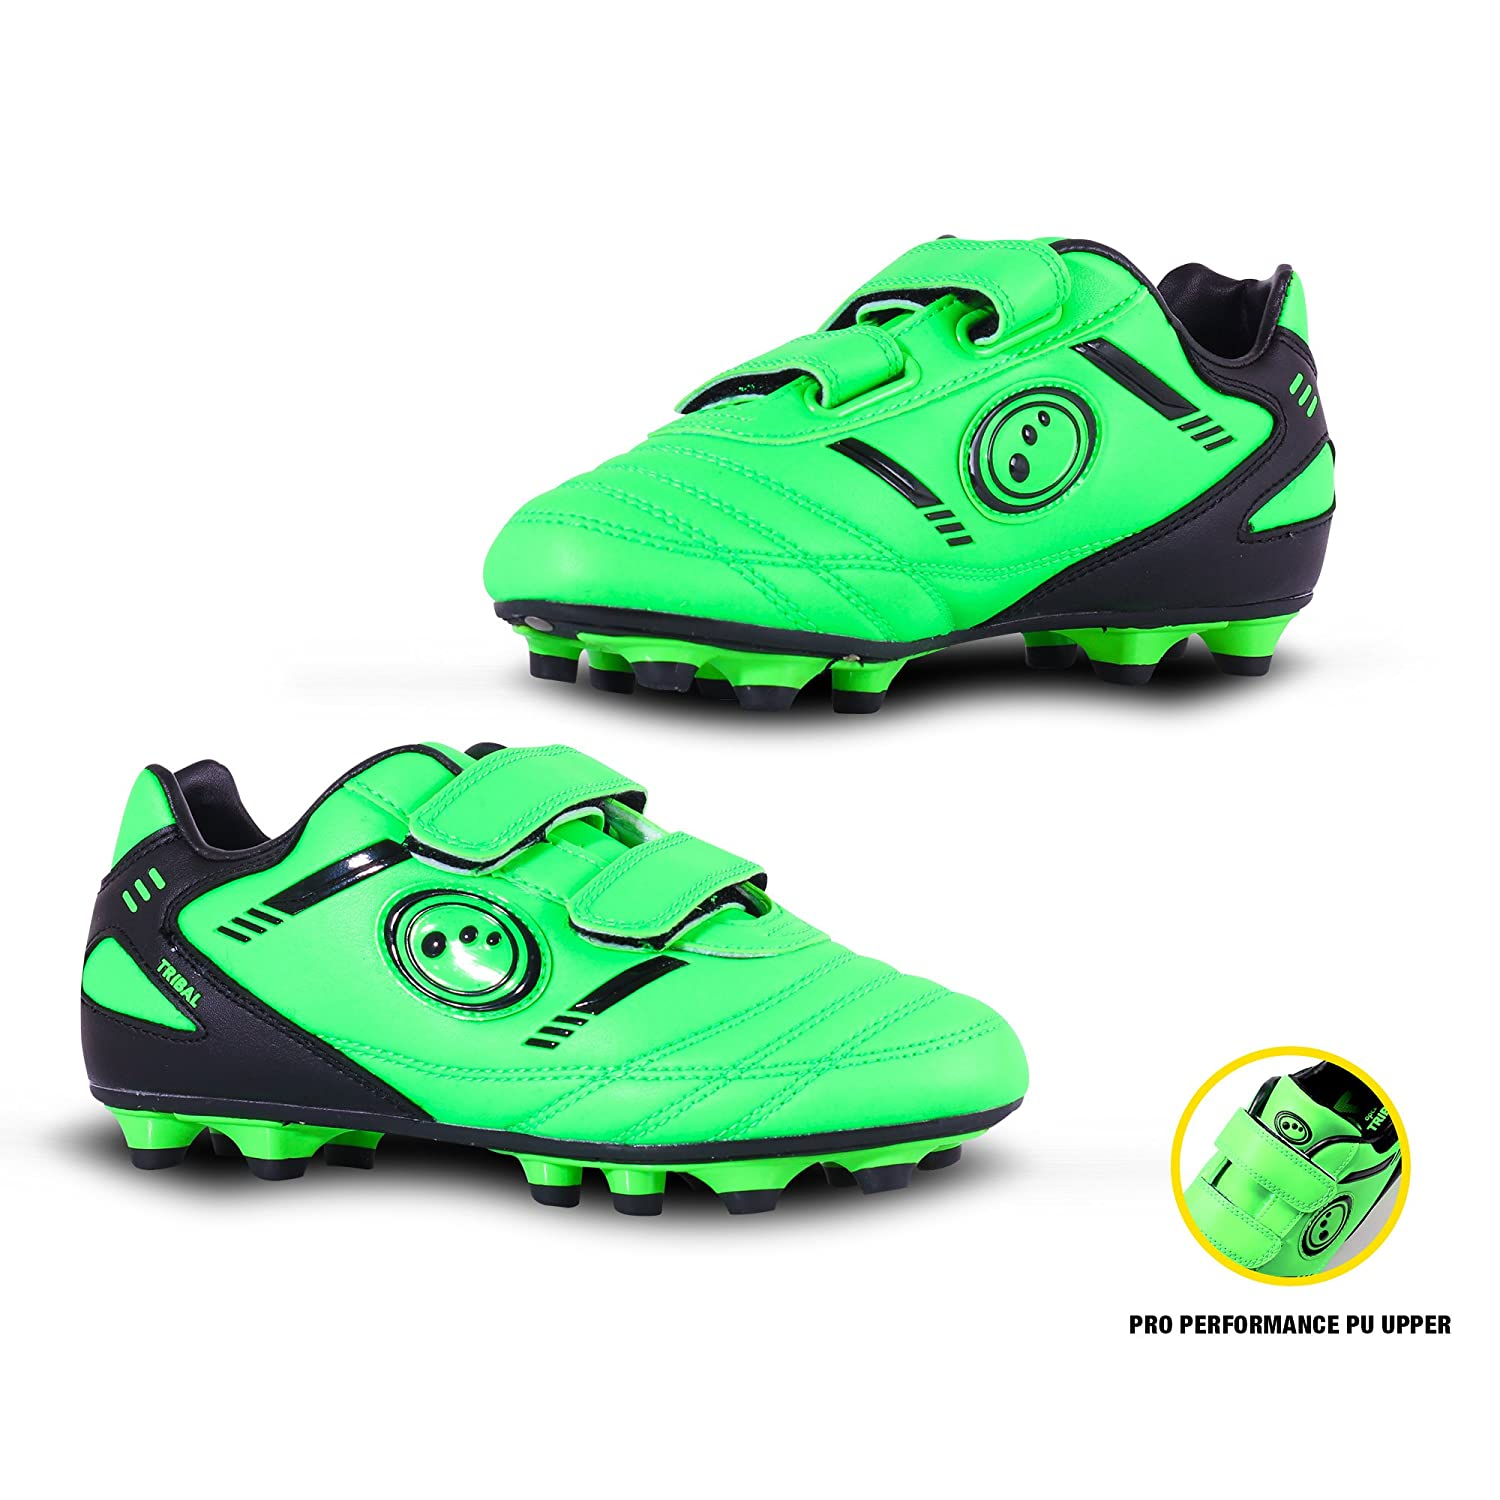 OPTIMUM Tribal Moulded, Botas de fútbol para Niños FBTVMSYPJ3